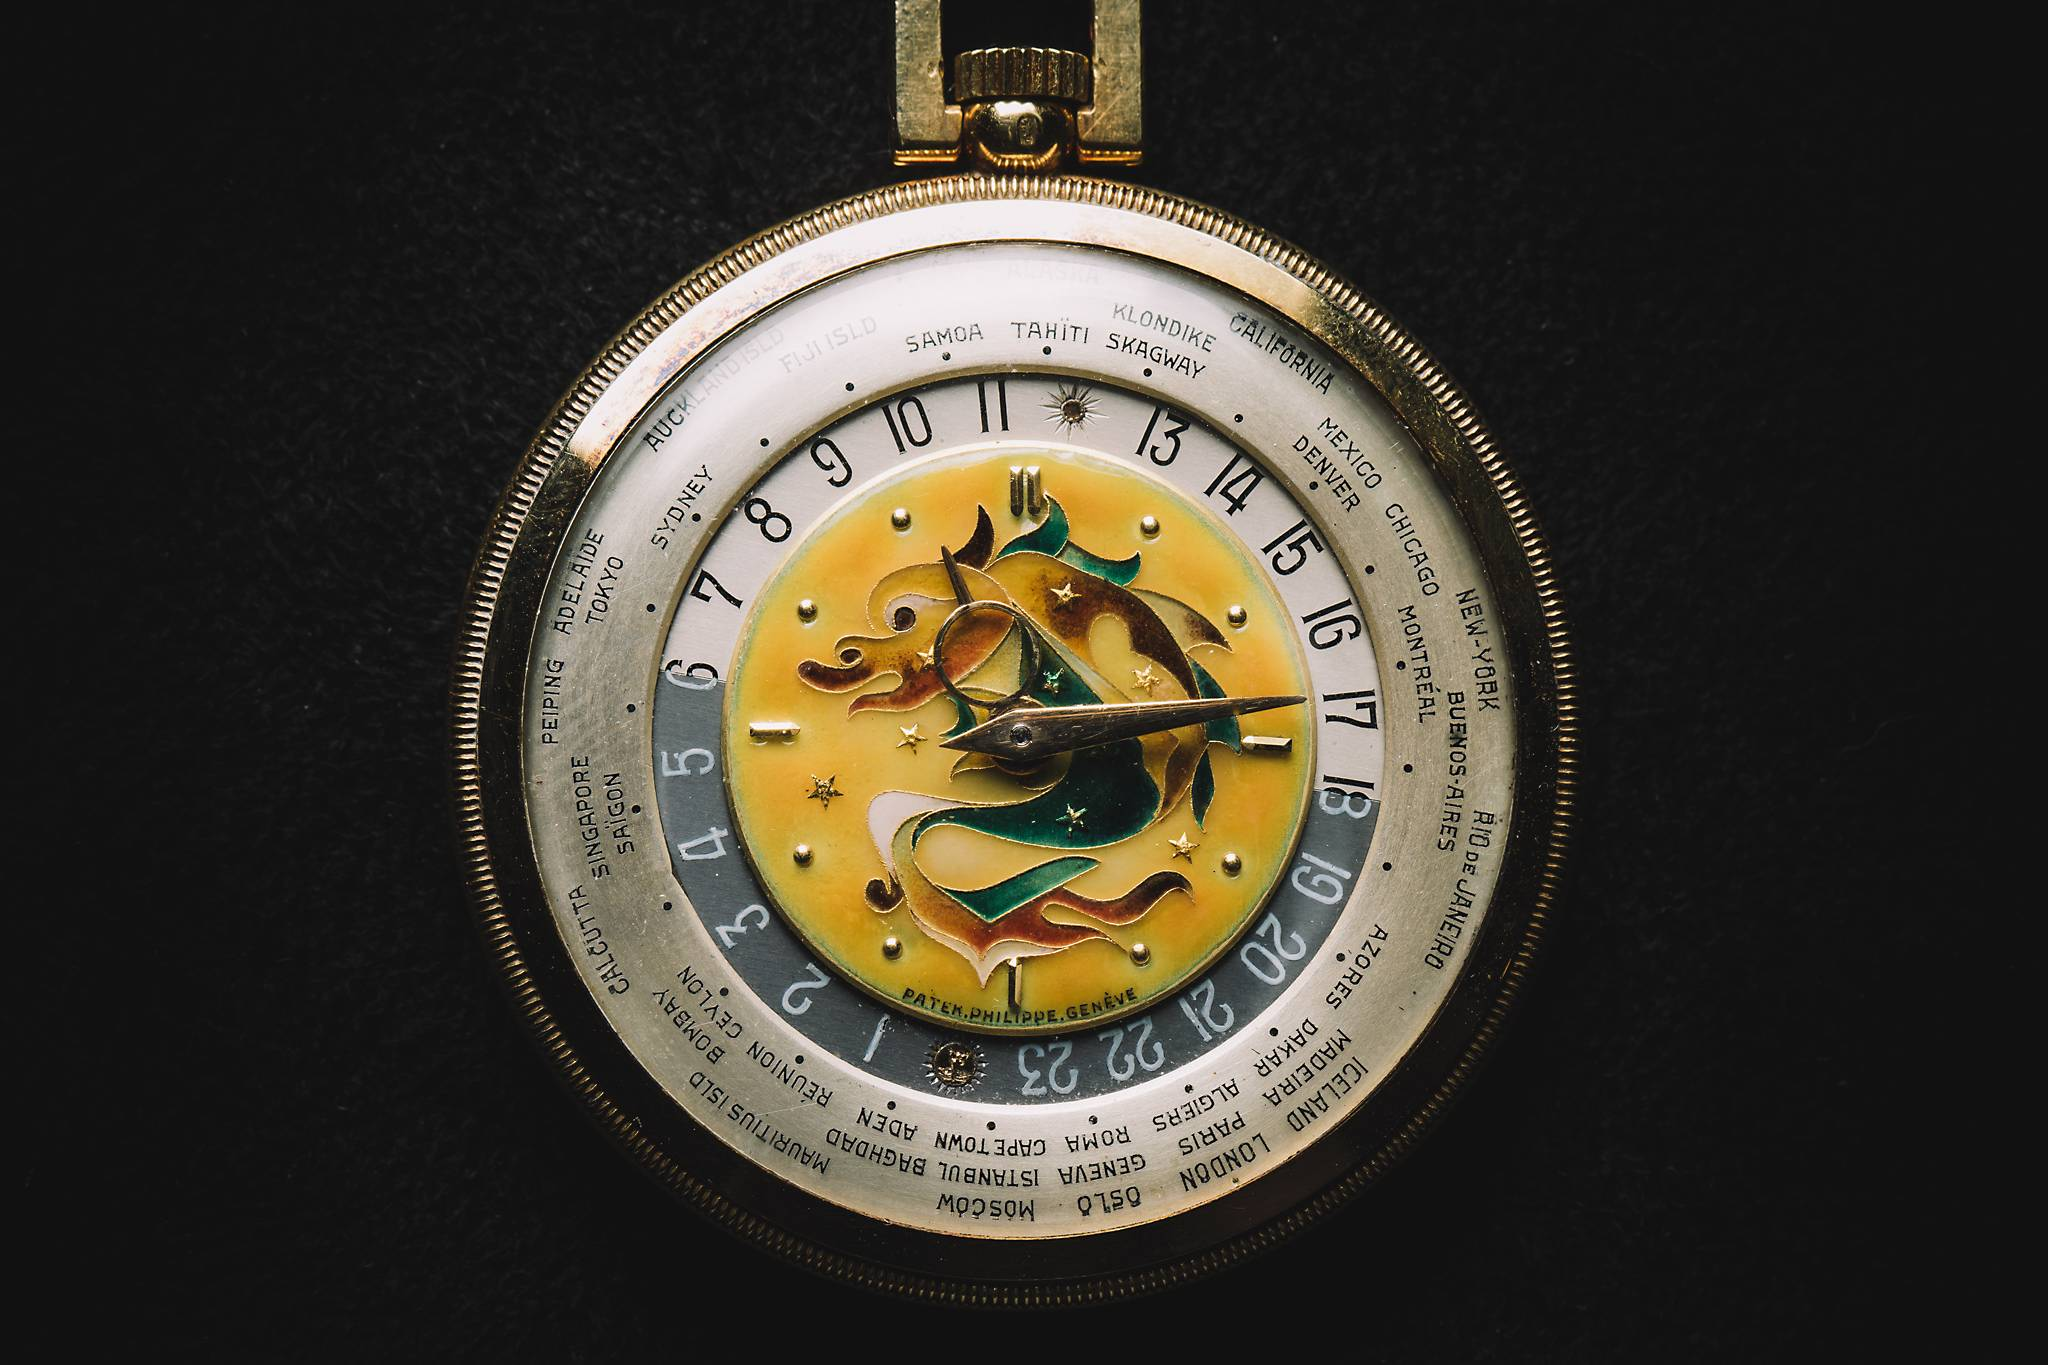 PATEK PHILIPPE 'The Star Dragon', Reference 605 HU, Yellow Gold, 1944-6